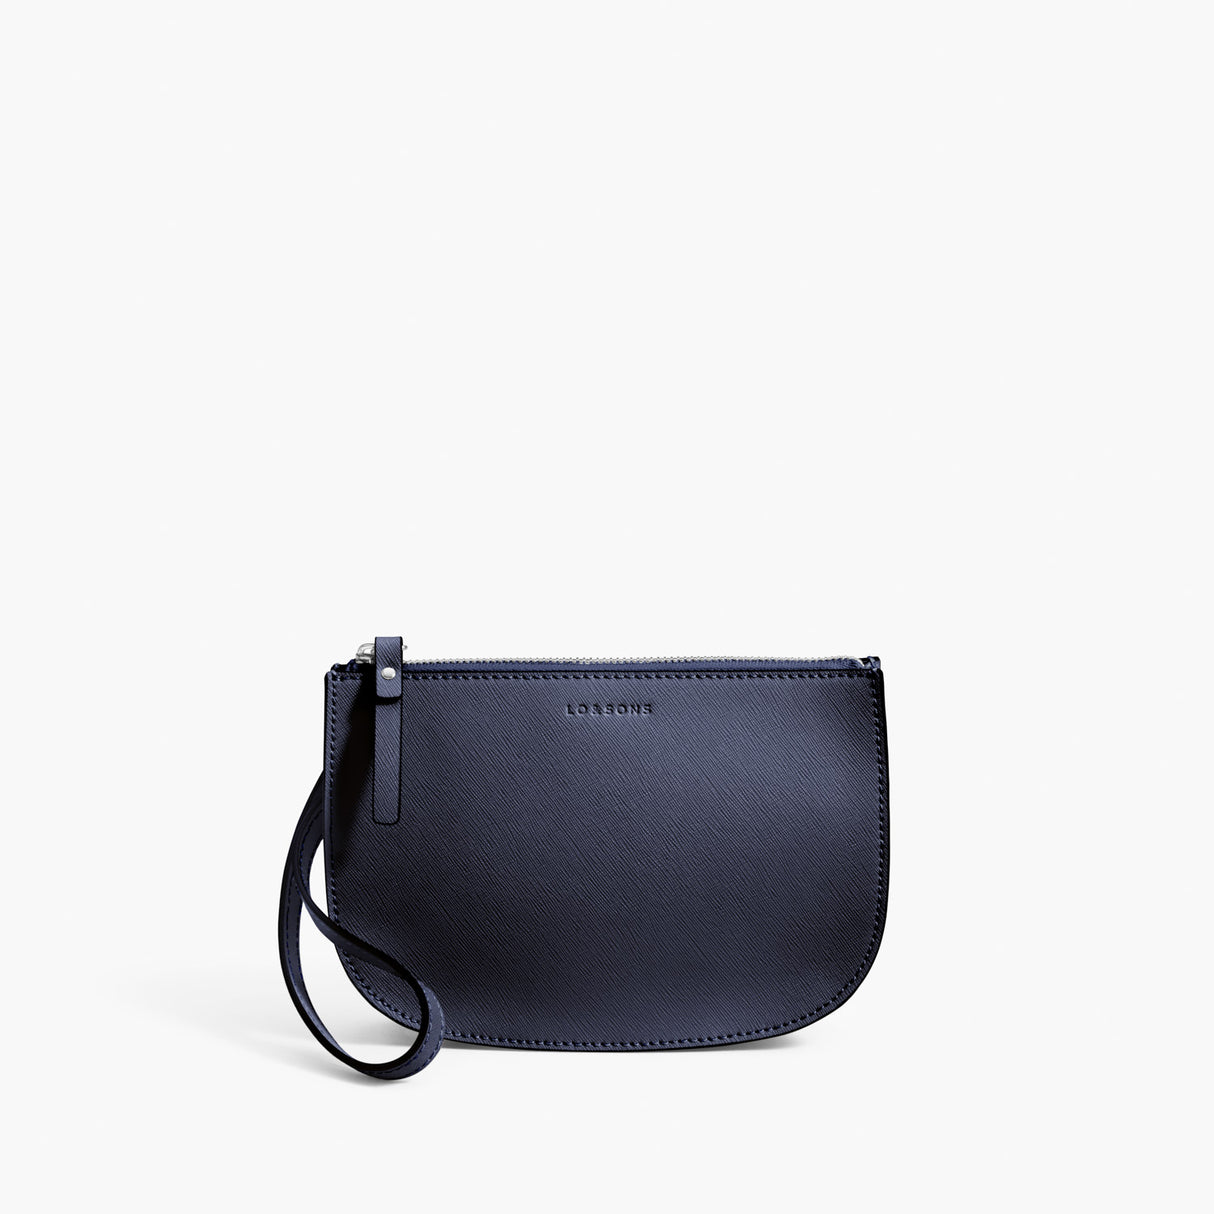 Front Wristlet - Waverley 2 - Saffiano Leather - Deep Navy / Silver / Azure - Crossbody Bag - Lo & Sons